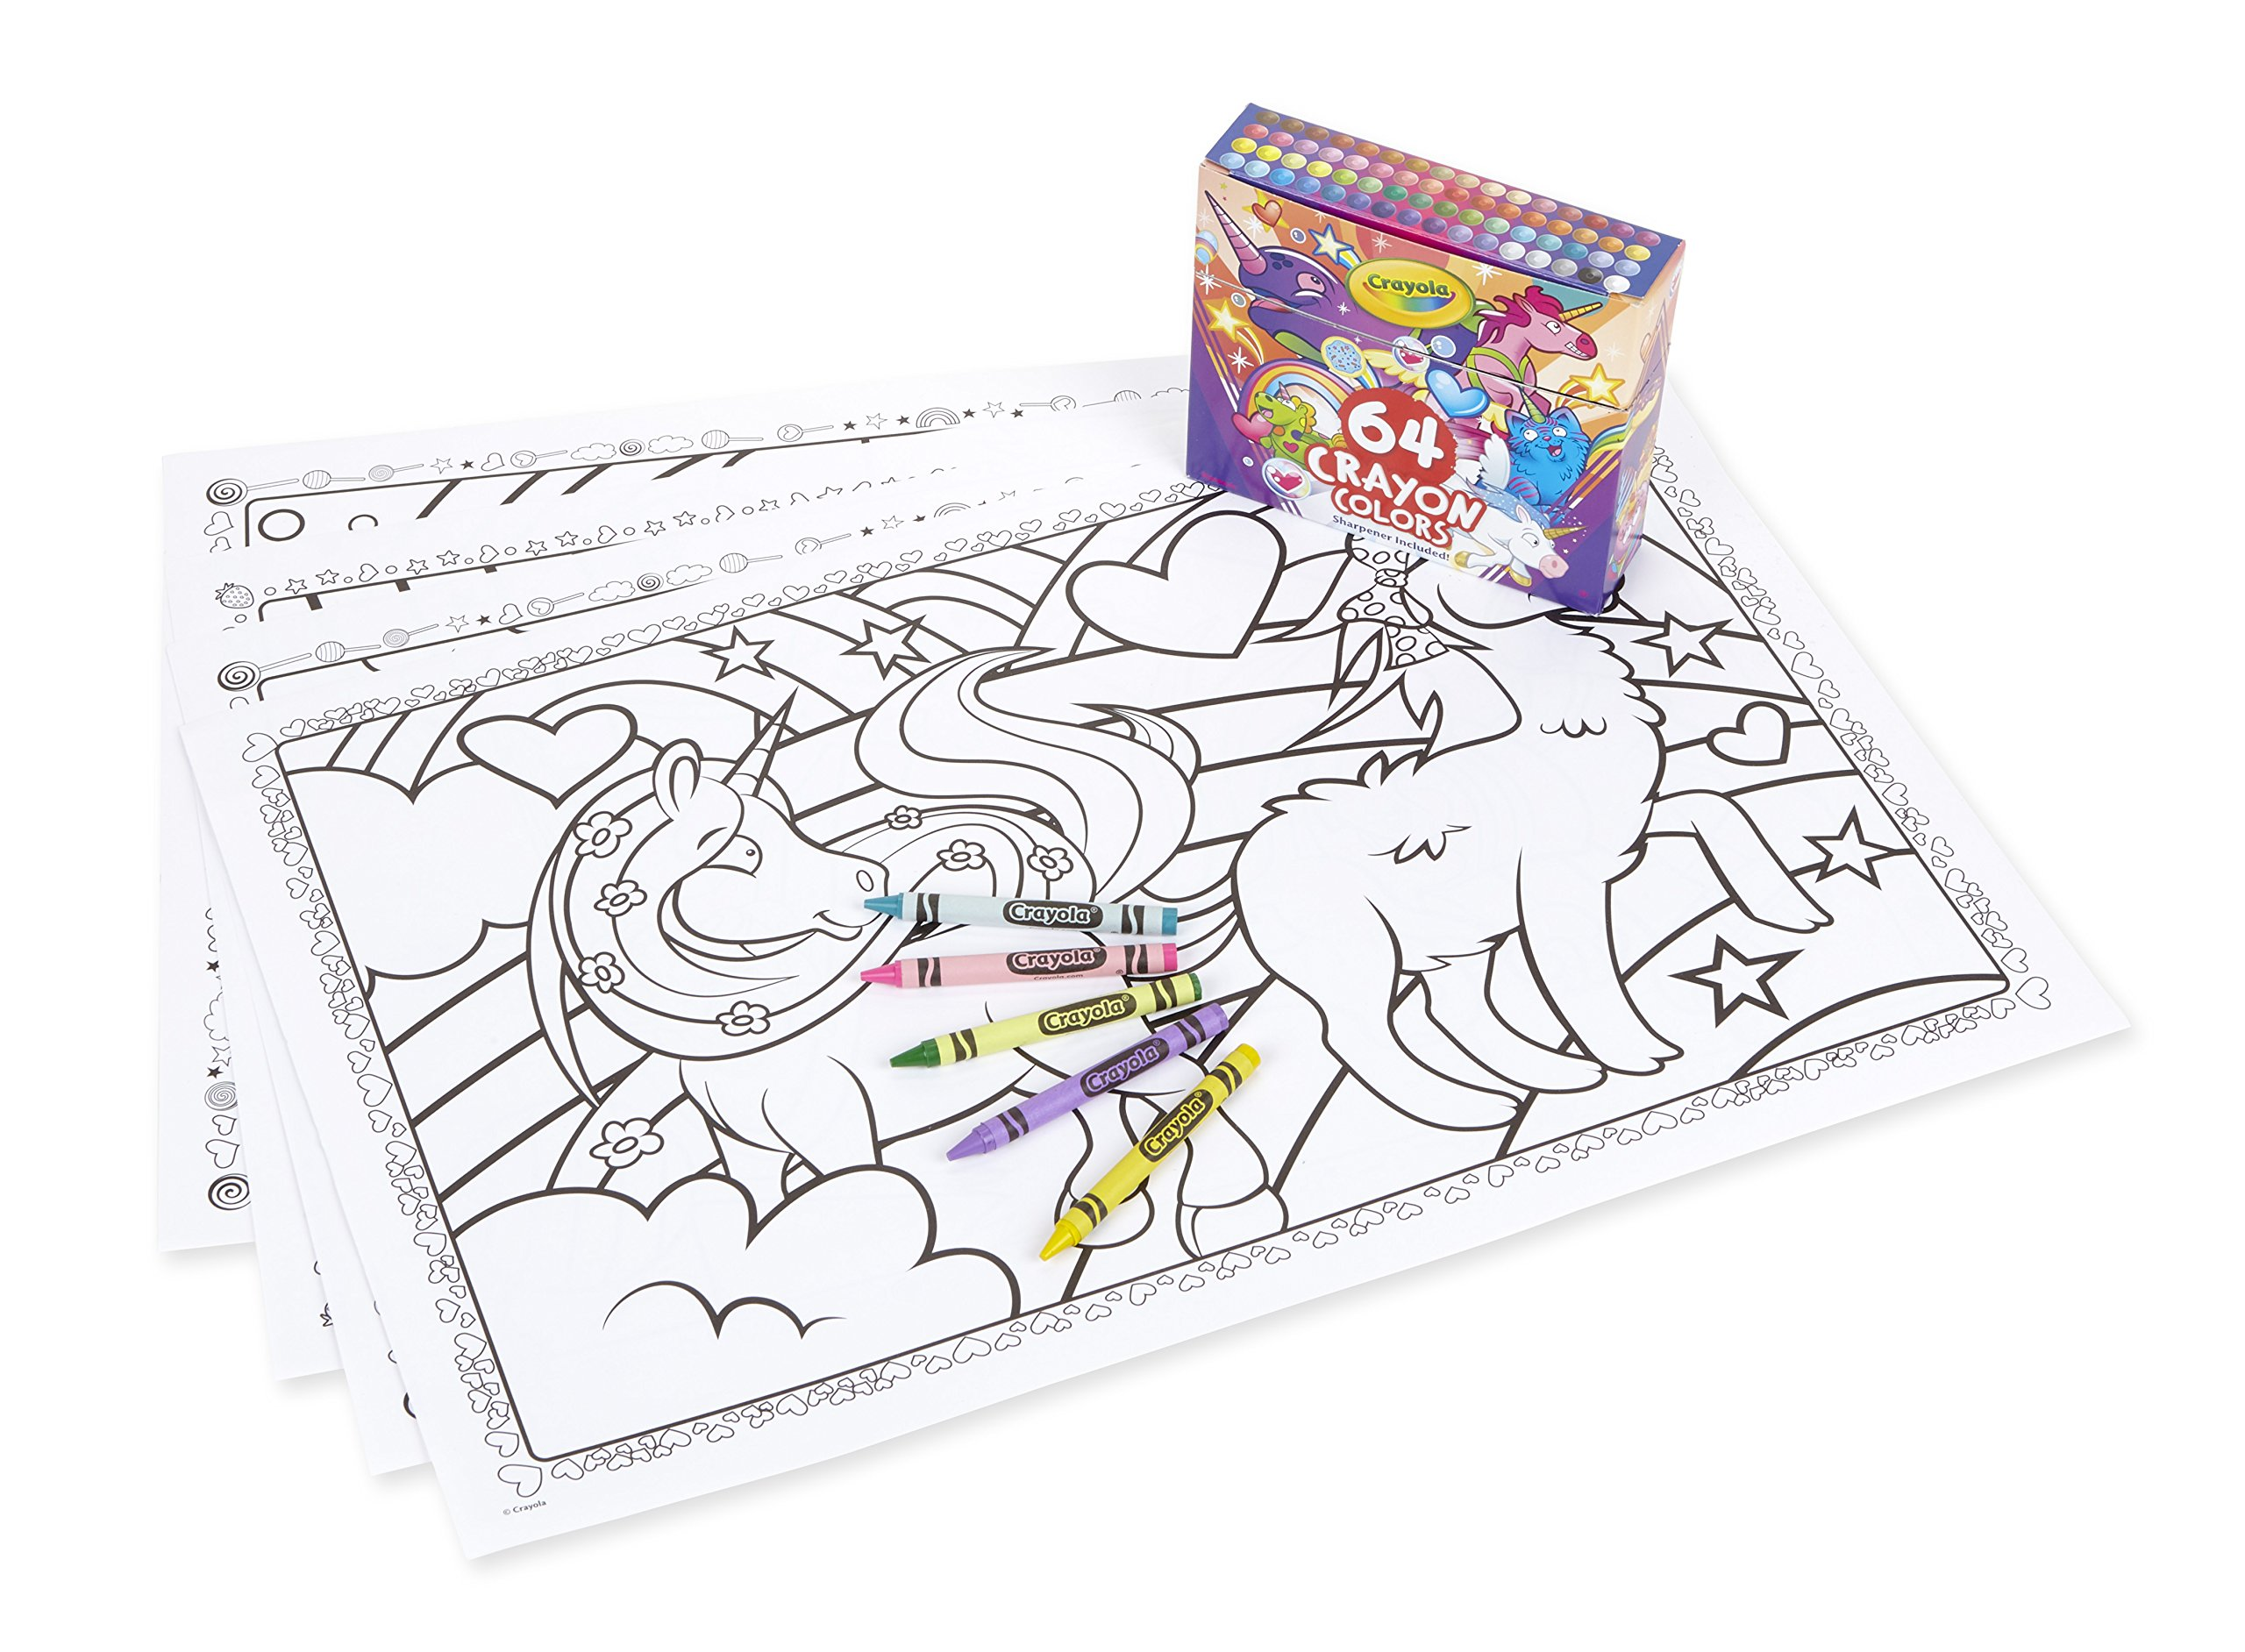 Crayola Uni-Creatures Coloring Pages with Custom Crayon Set, 64 Count, Unicorn Gift for Kids, Age 3, 4, 5, 6, 7 3